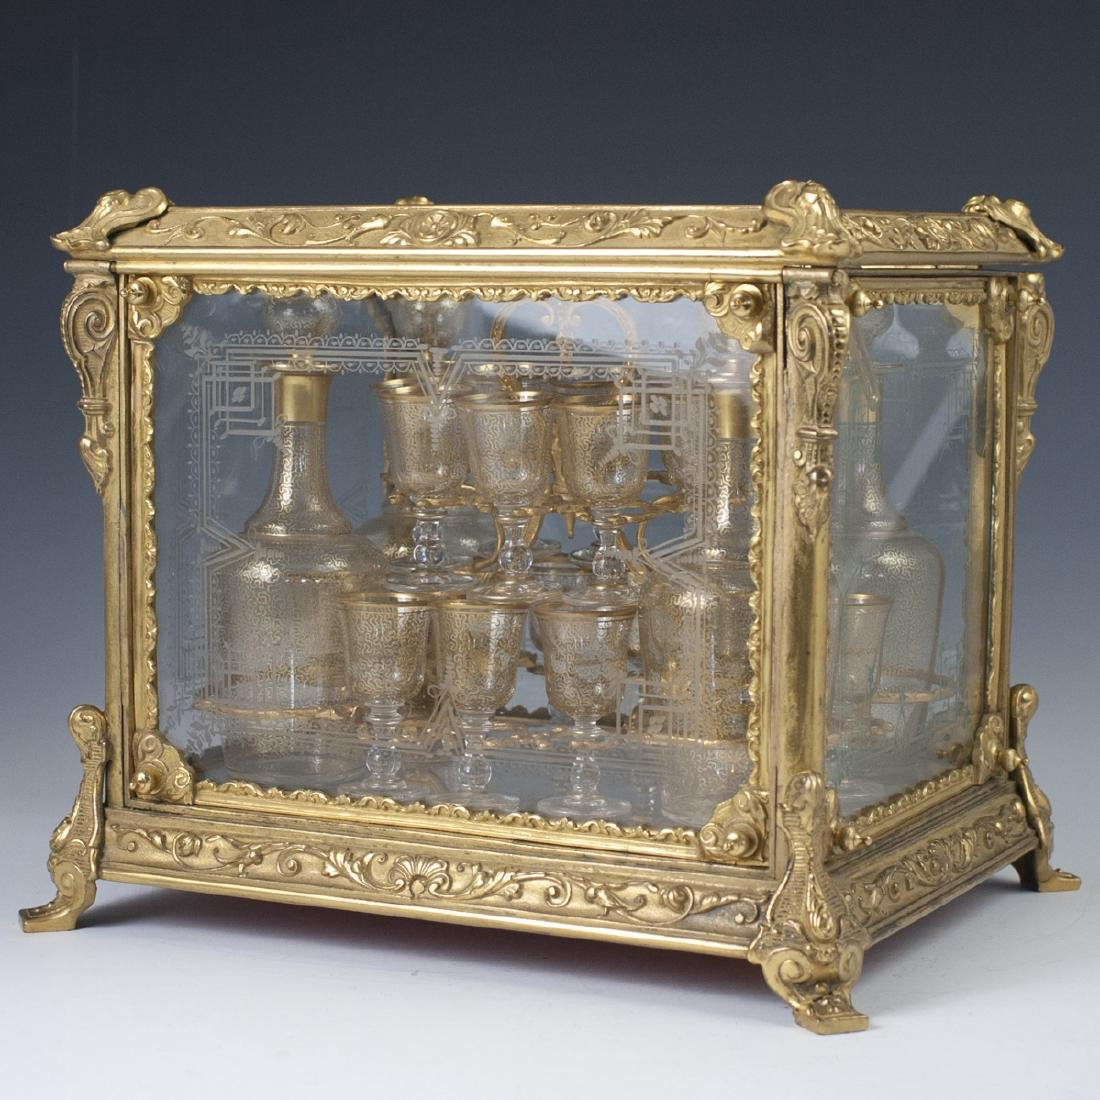 Antique French Ormolu Etched Crystal Tantalus Set - 5